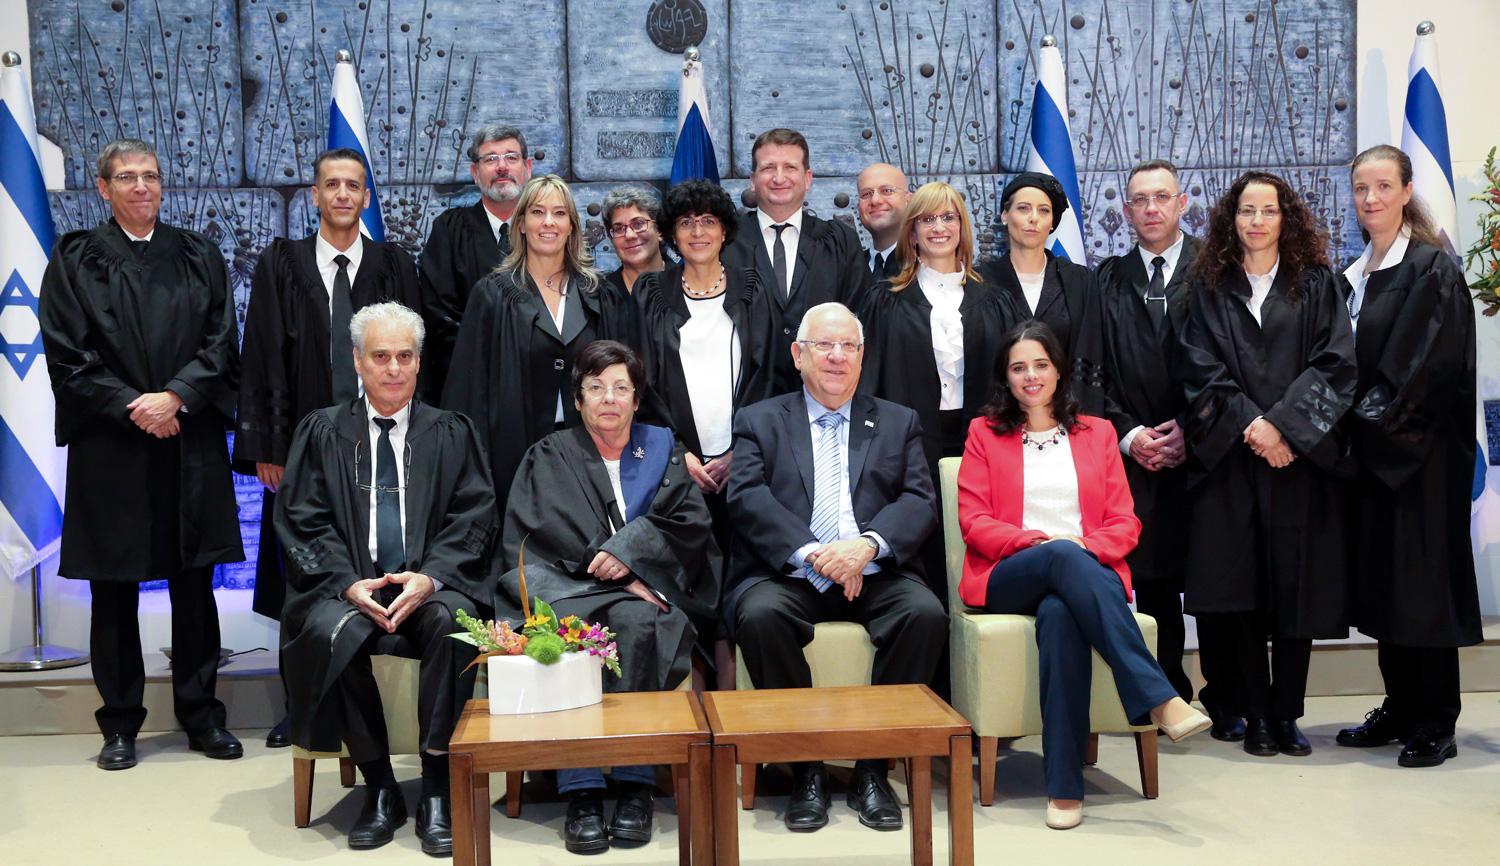 A swearing-in ceremony for newly appointed judges at the Israeli president's residence in Jerusalem on December 8, 2016. Yossi Zamir/Flash90.